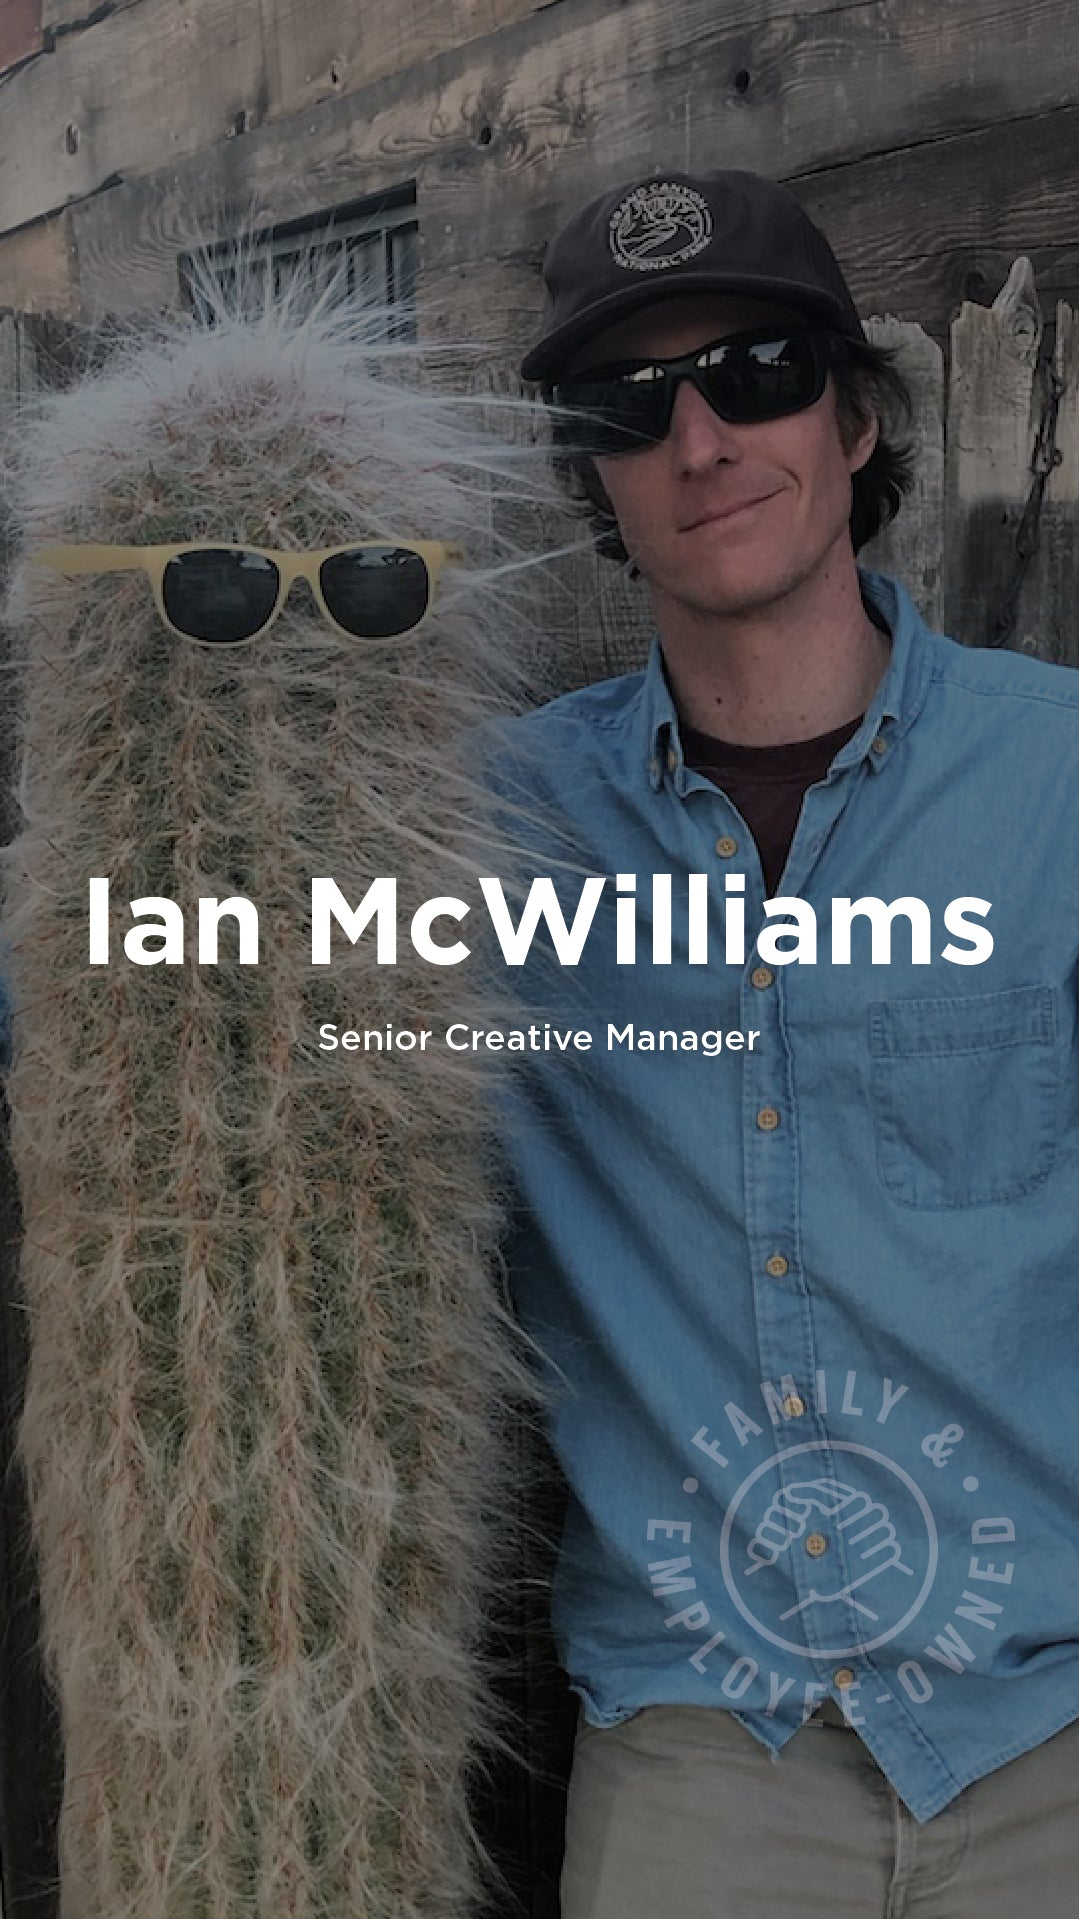 Picks from Klean's Ian McWilliams